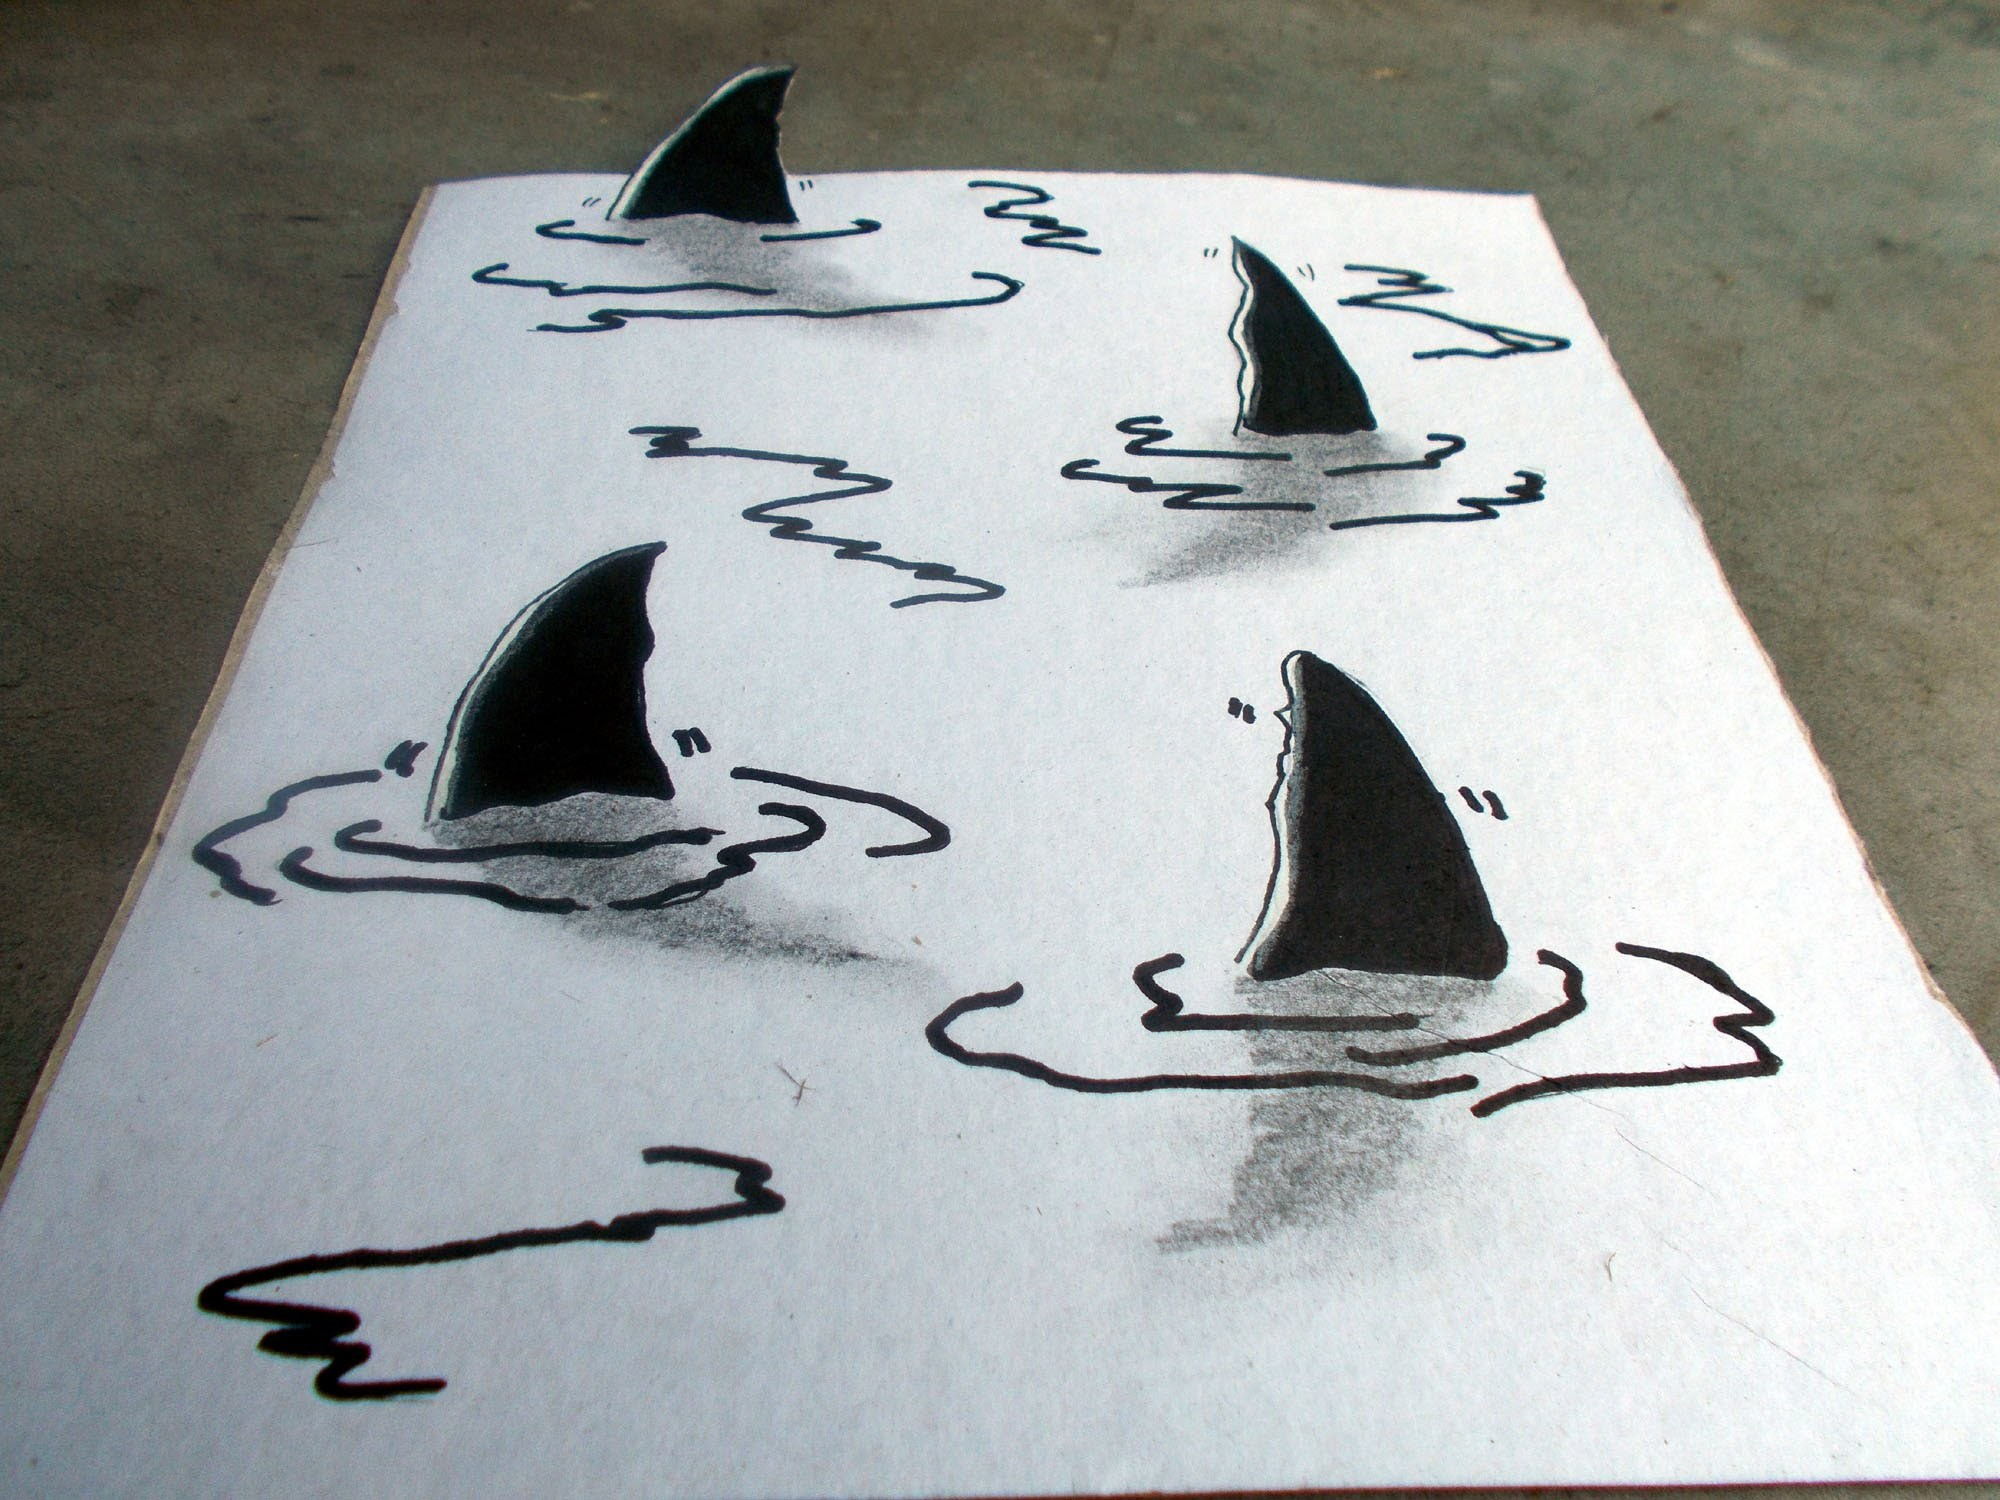 2000x1500 How To Drawing 3d Shark's Fin, Trick Art Amp Optical Illusion, Very